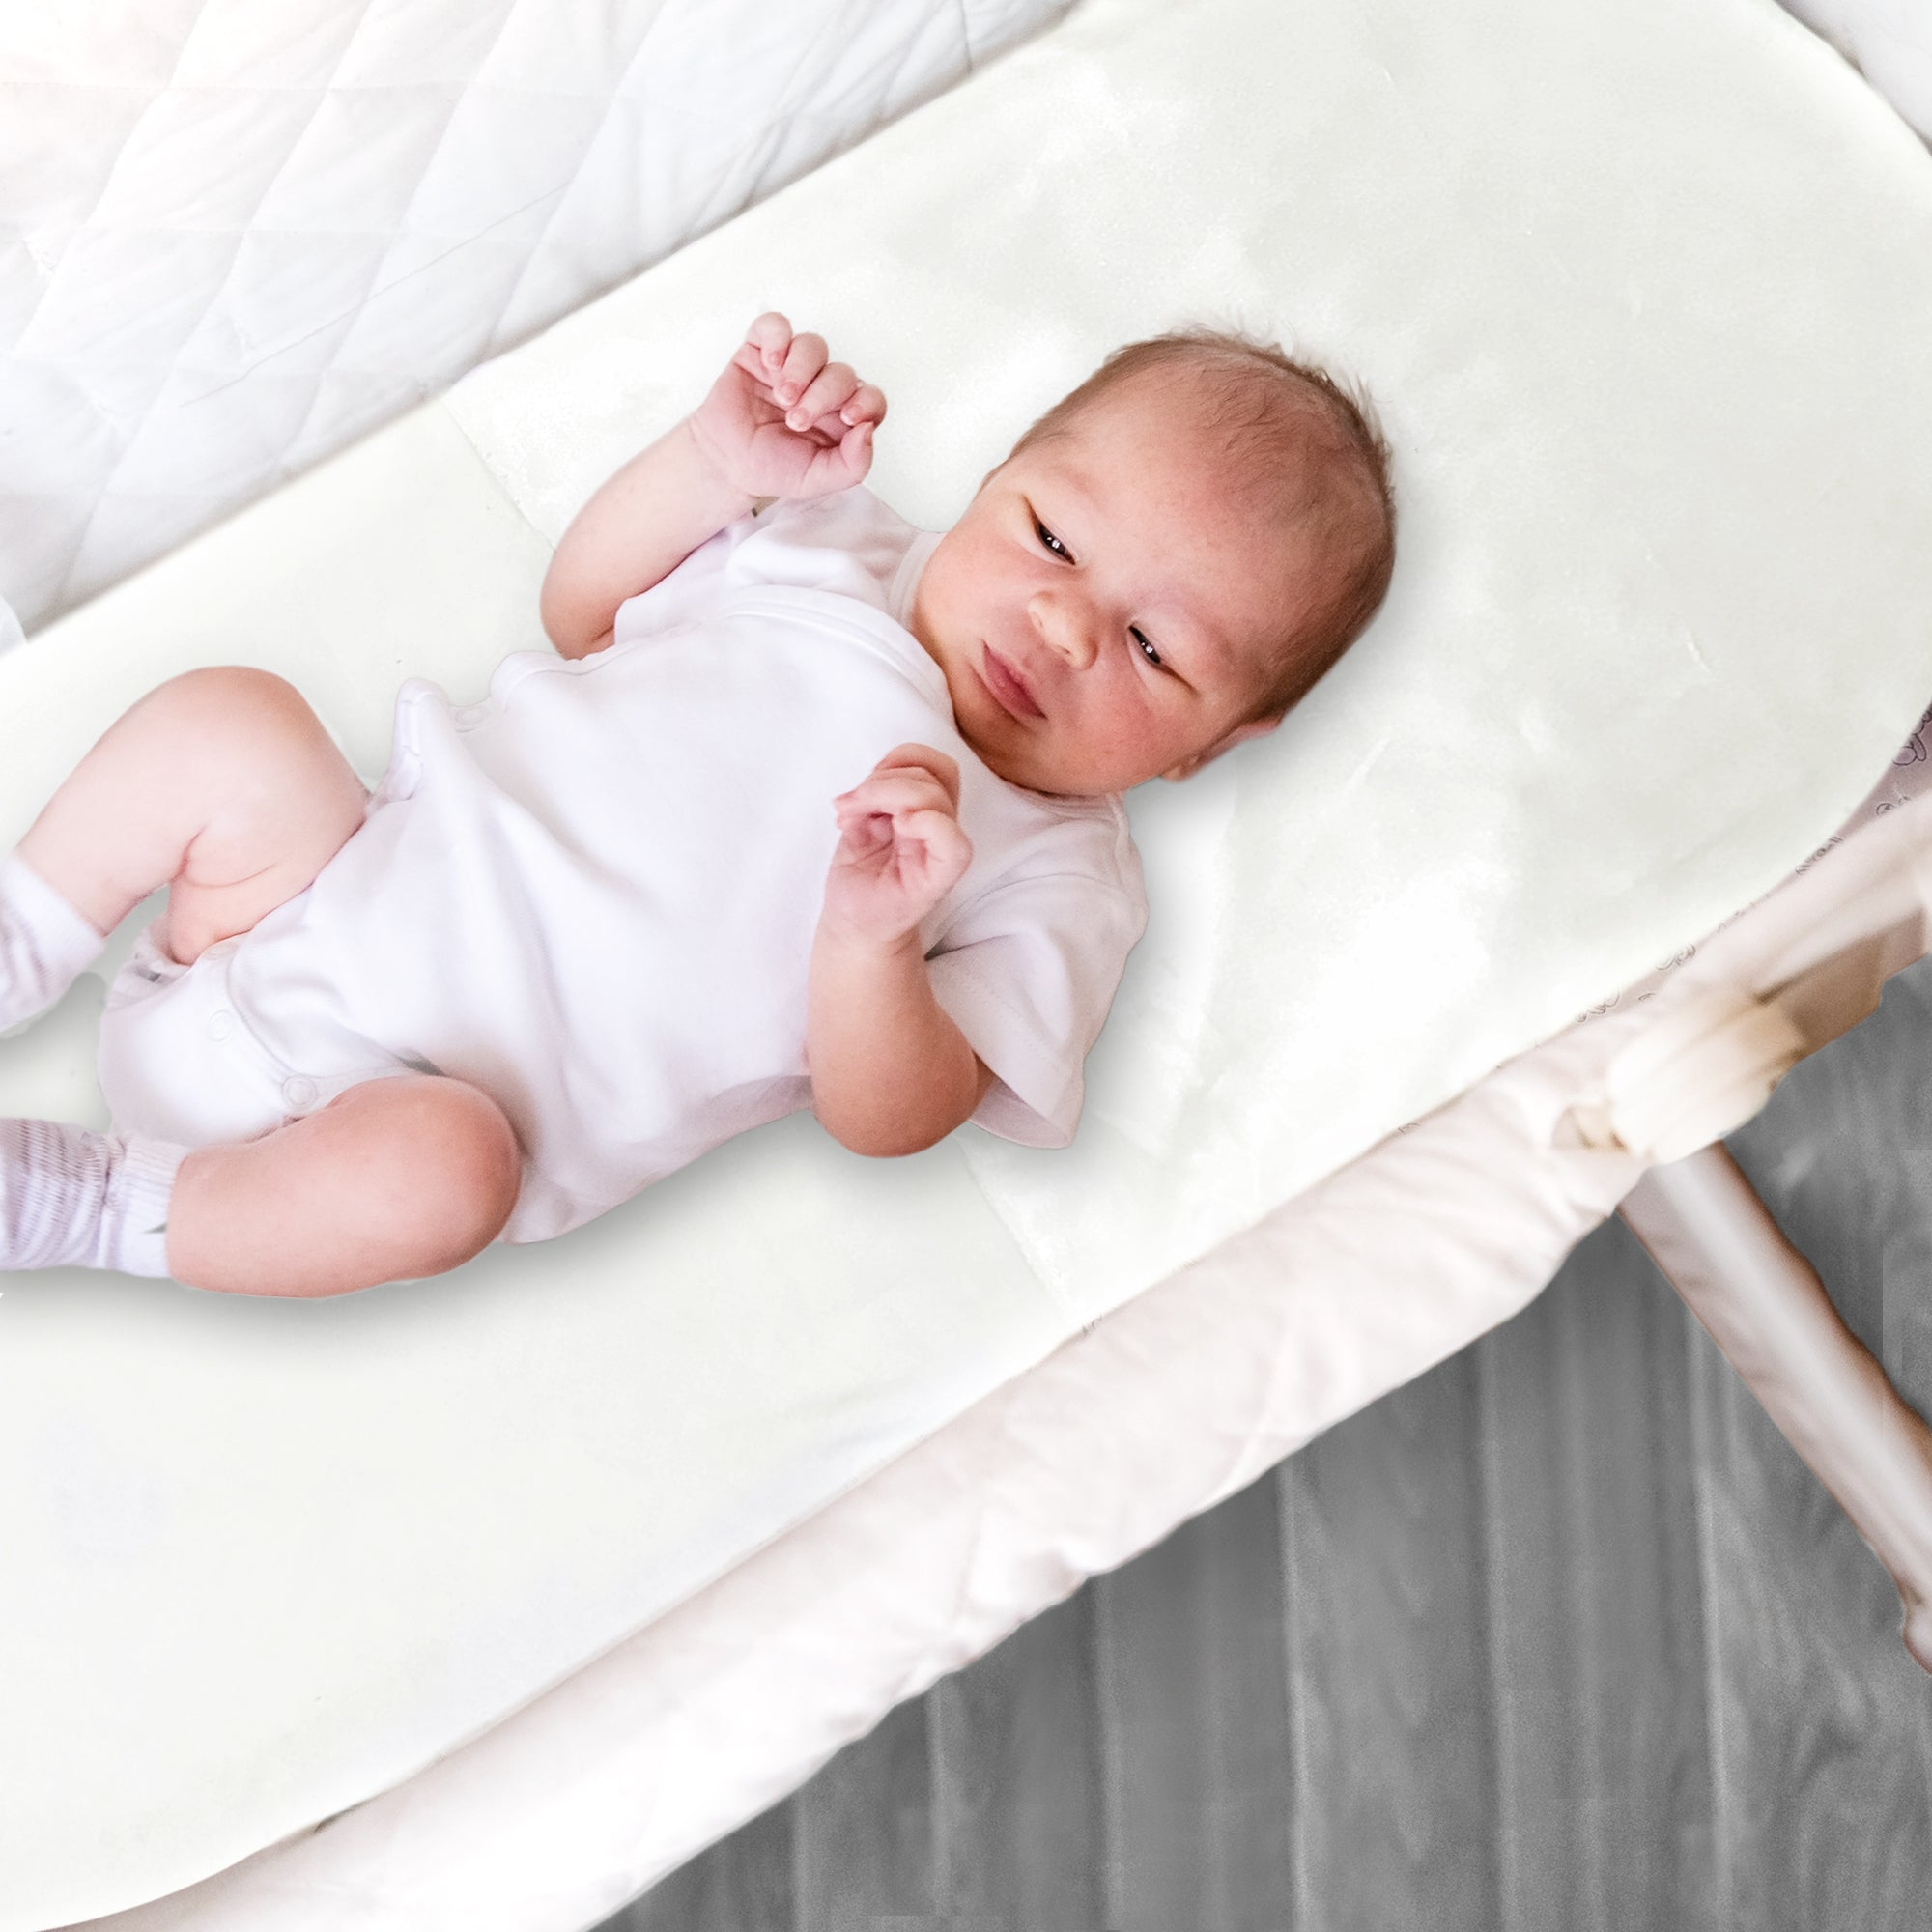 Baby laying in a Moses basket featuring a fitted satin sheet